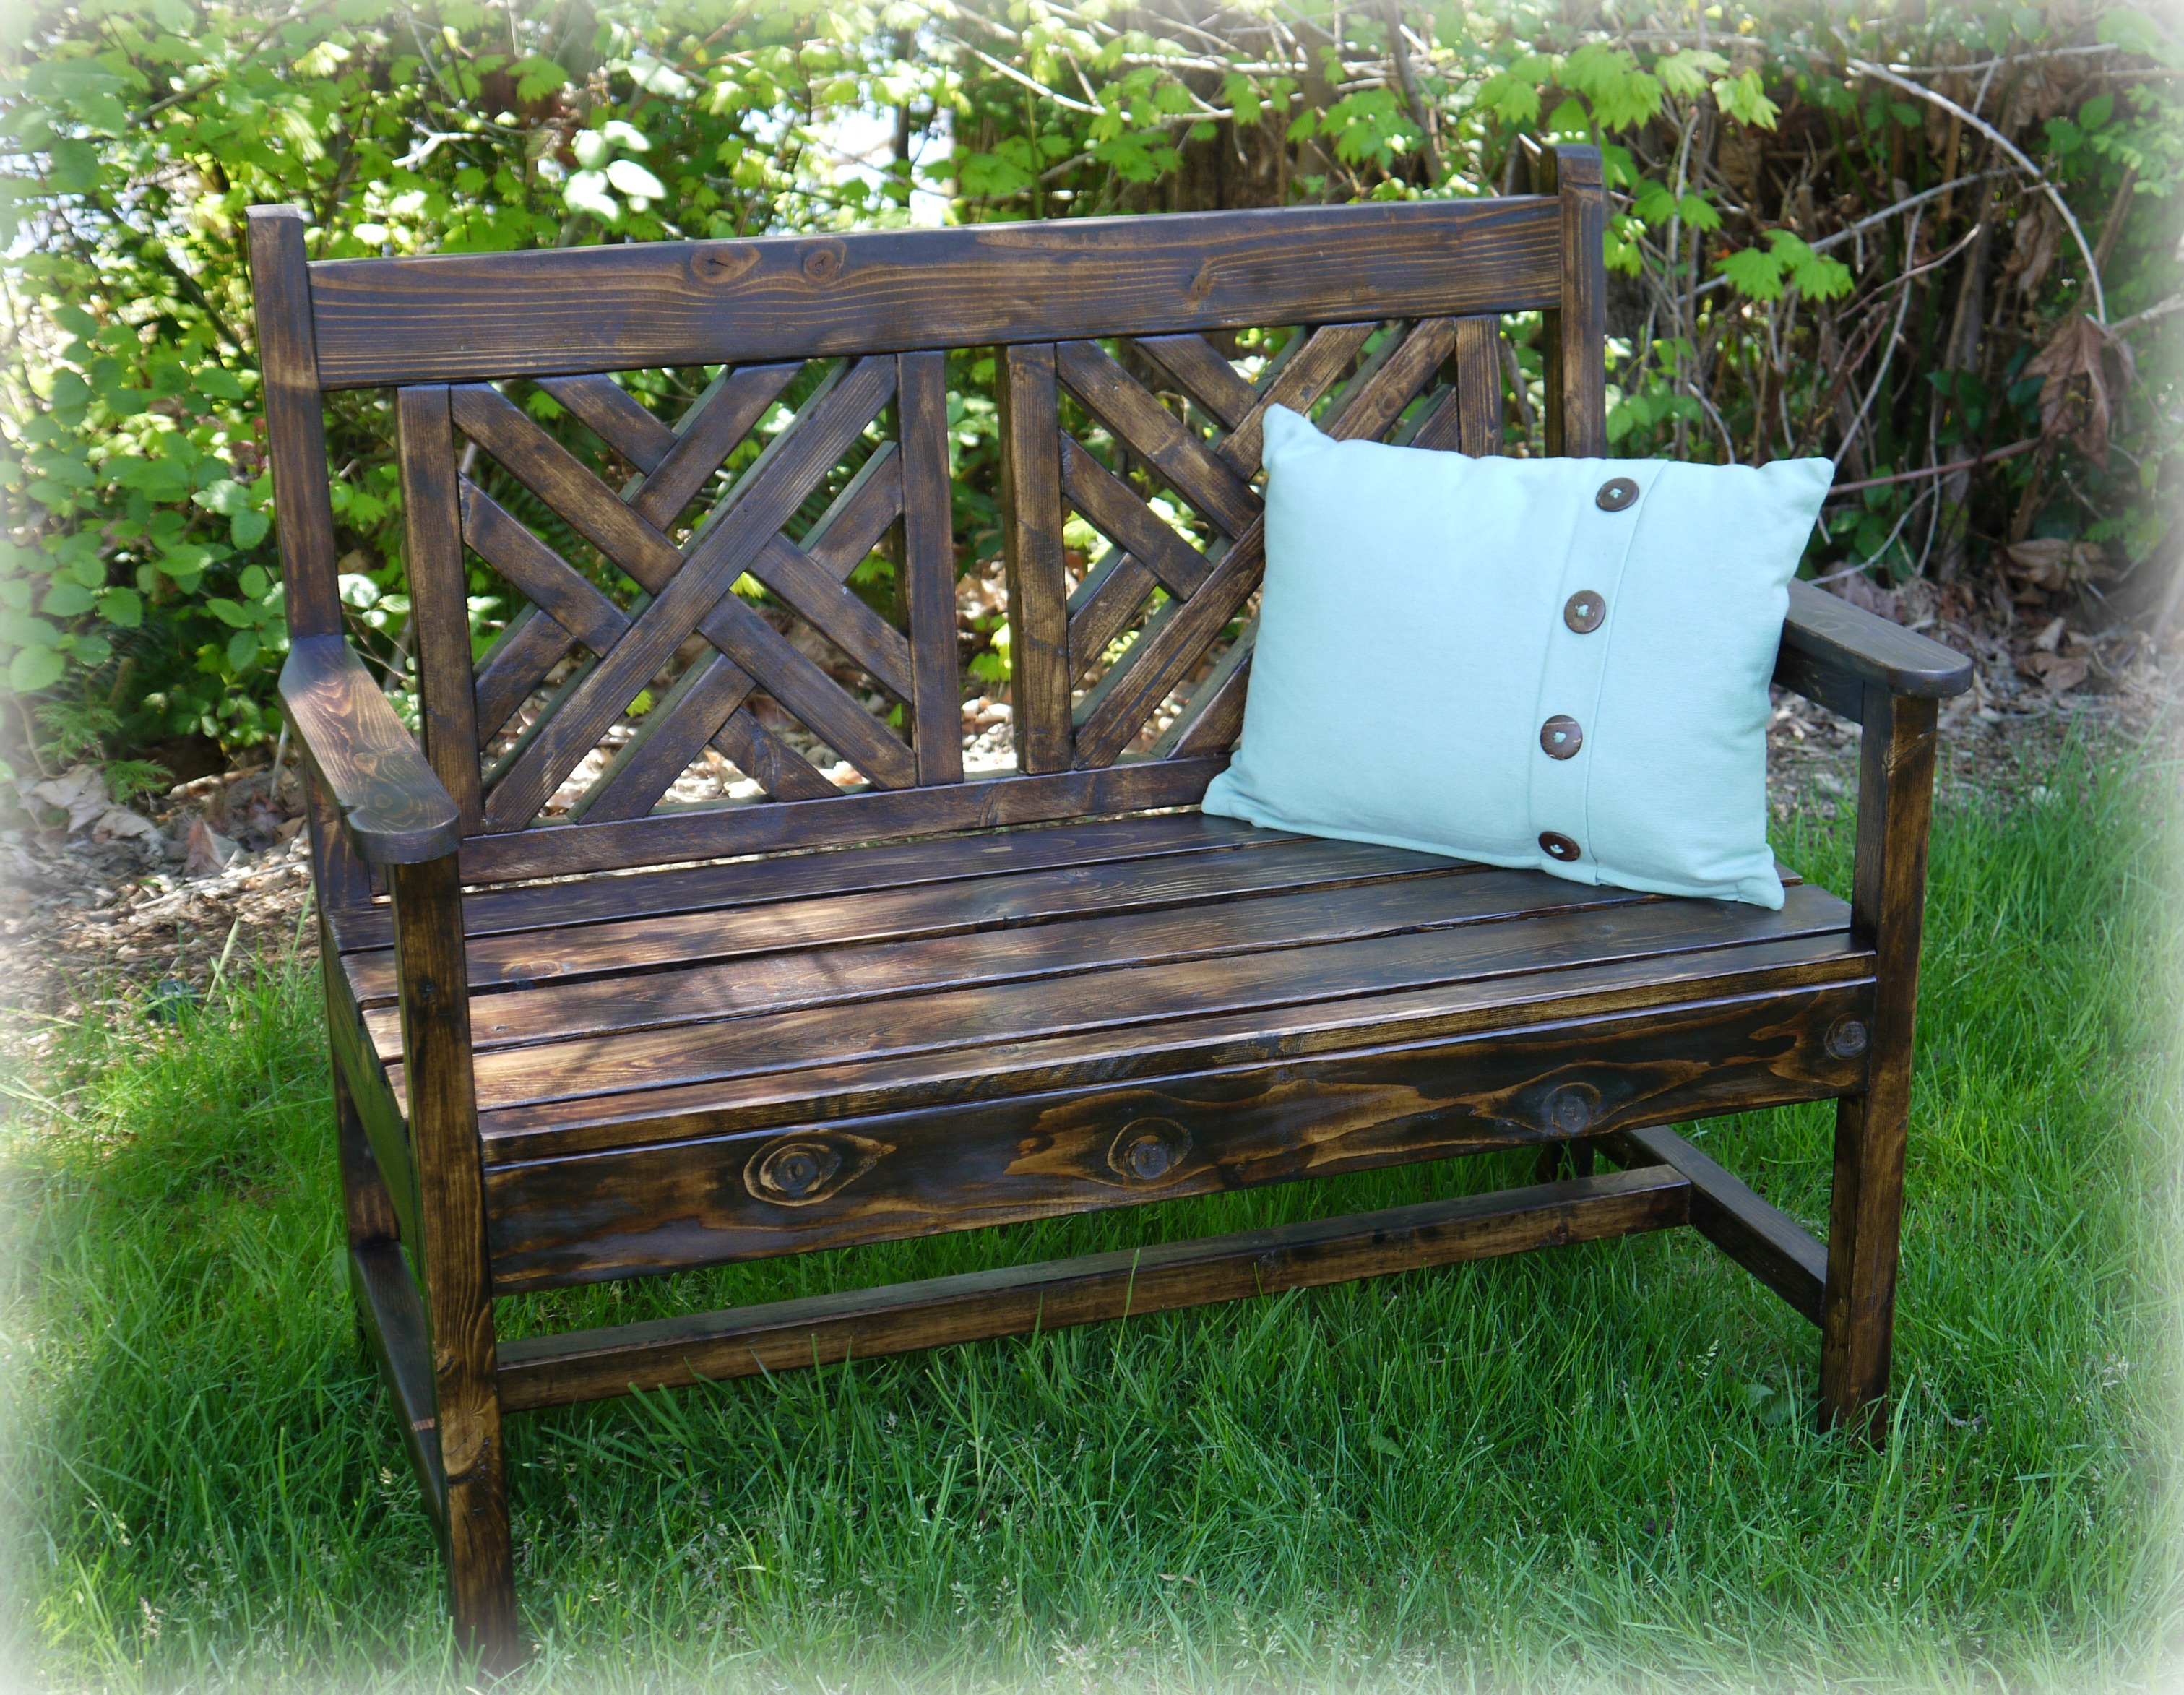 Red Hen Home build a woven bench